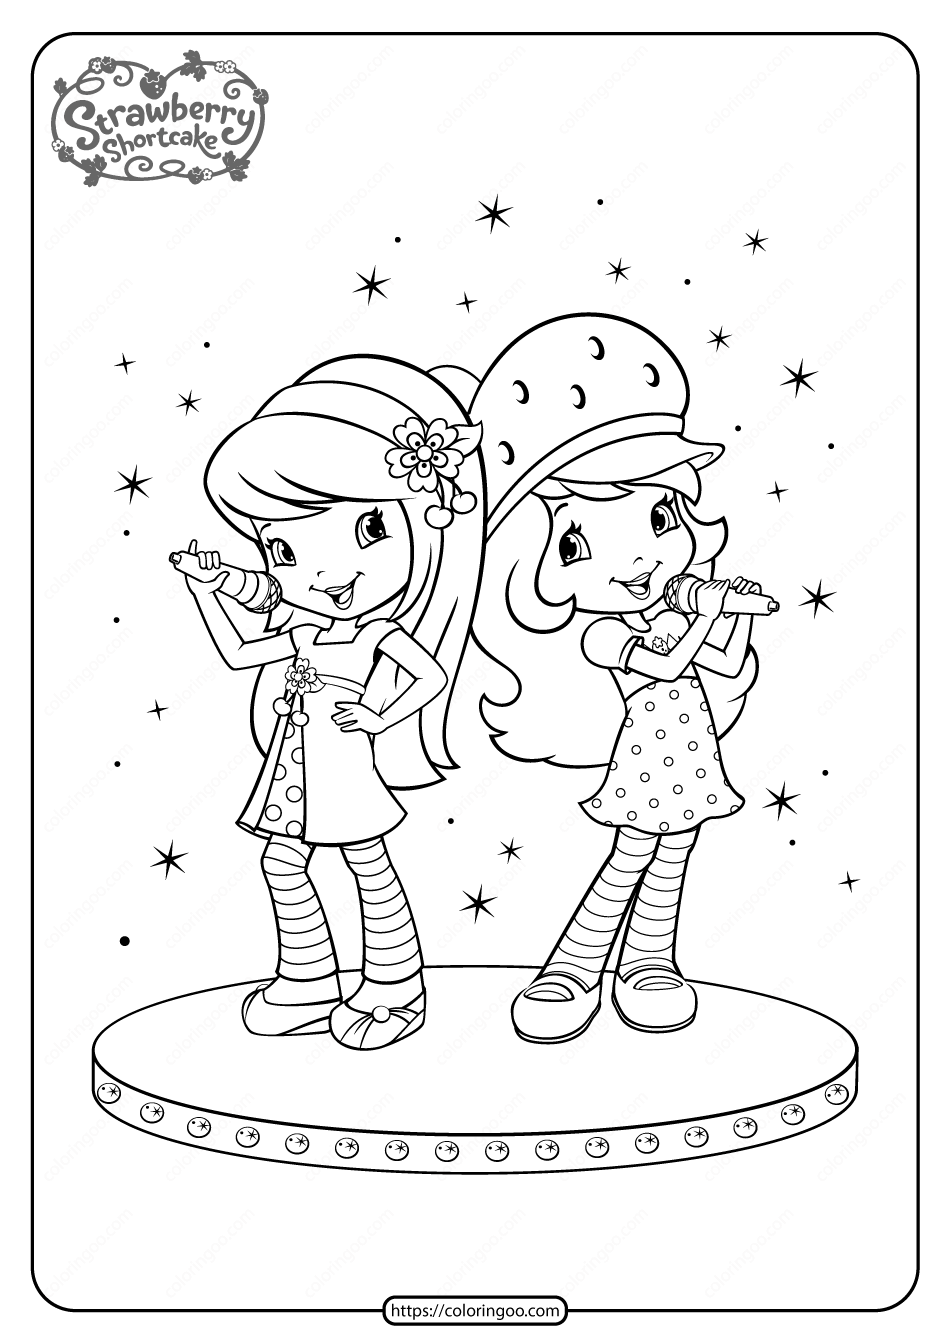 Printable Cherry Strawberry Onstage Duet Coloring